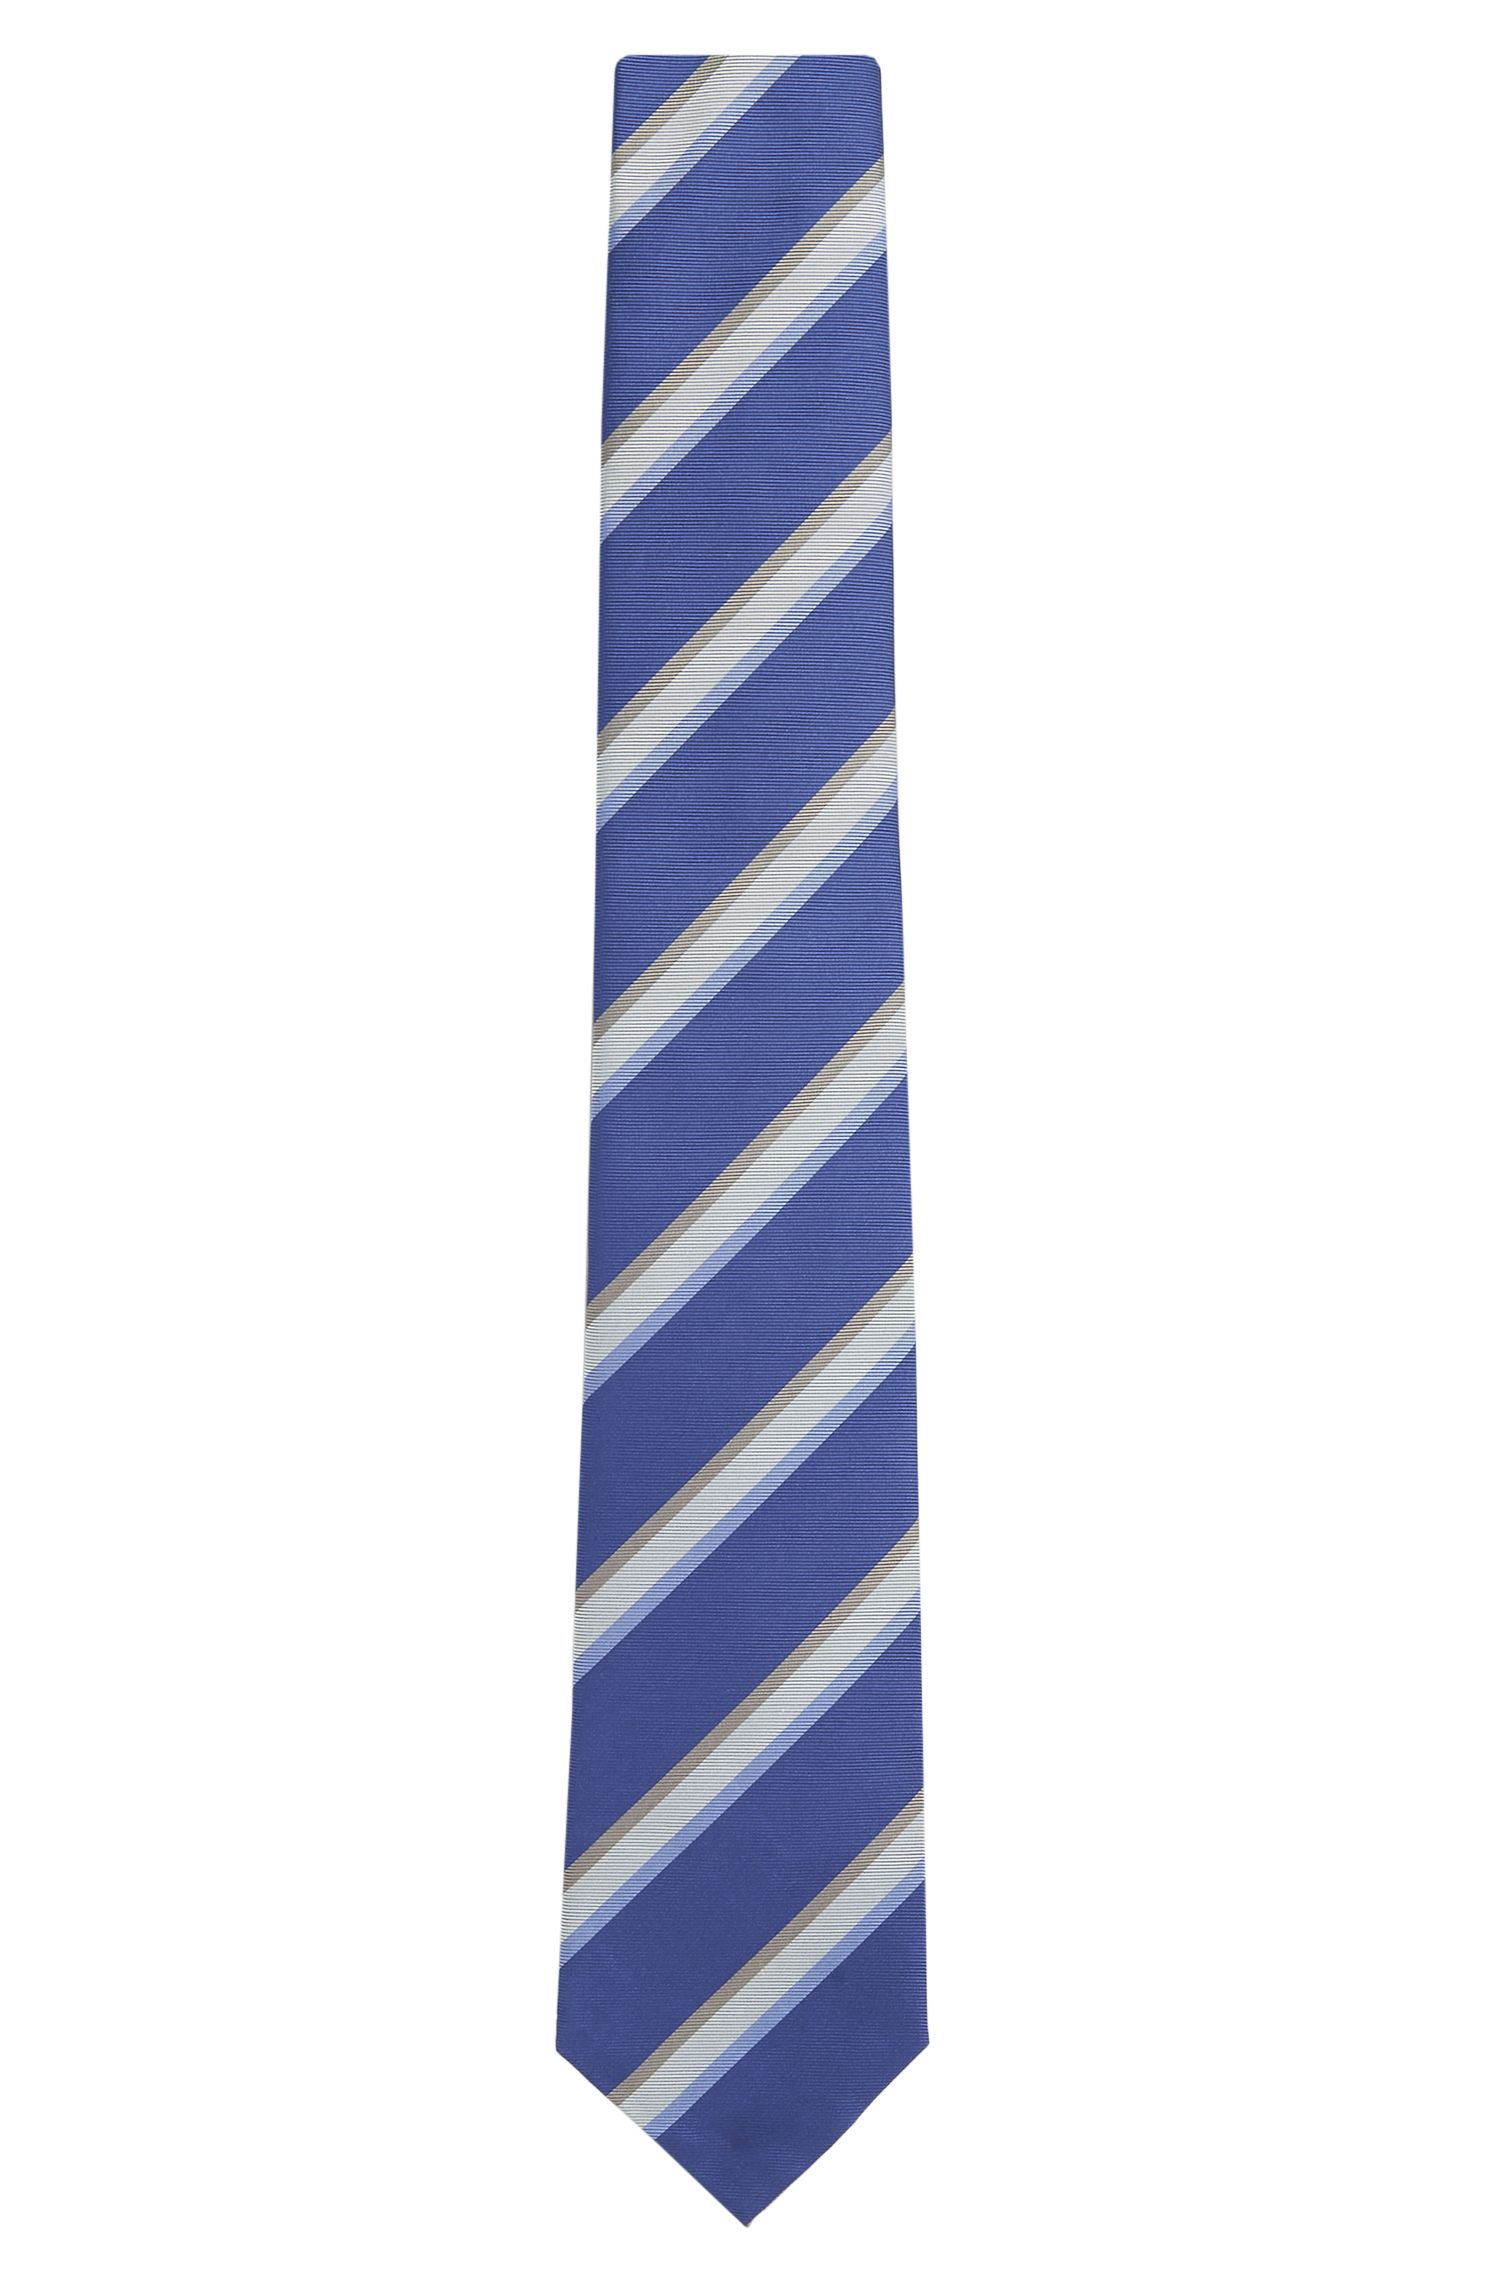 Striped Silk Tie | T-Tie 7.5 cm